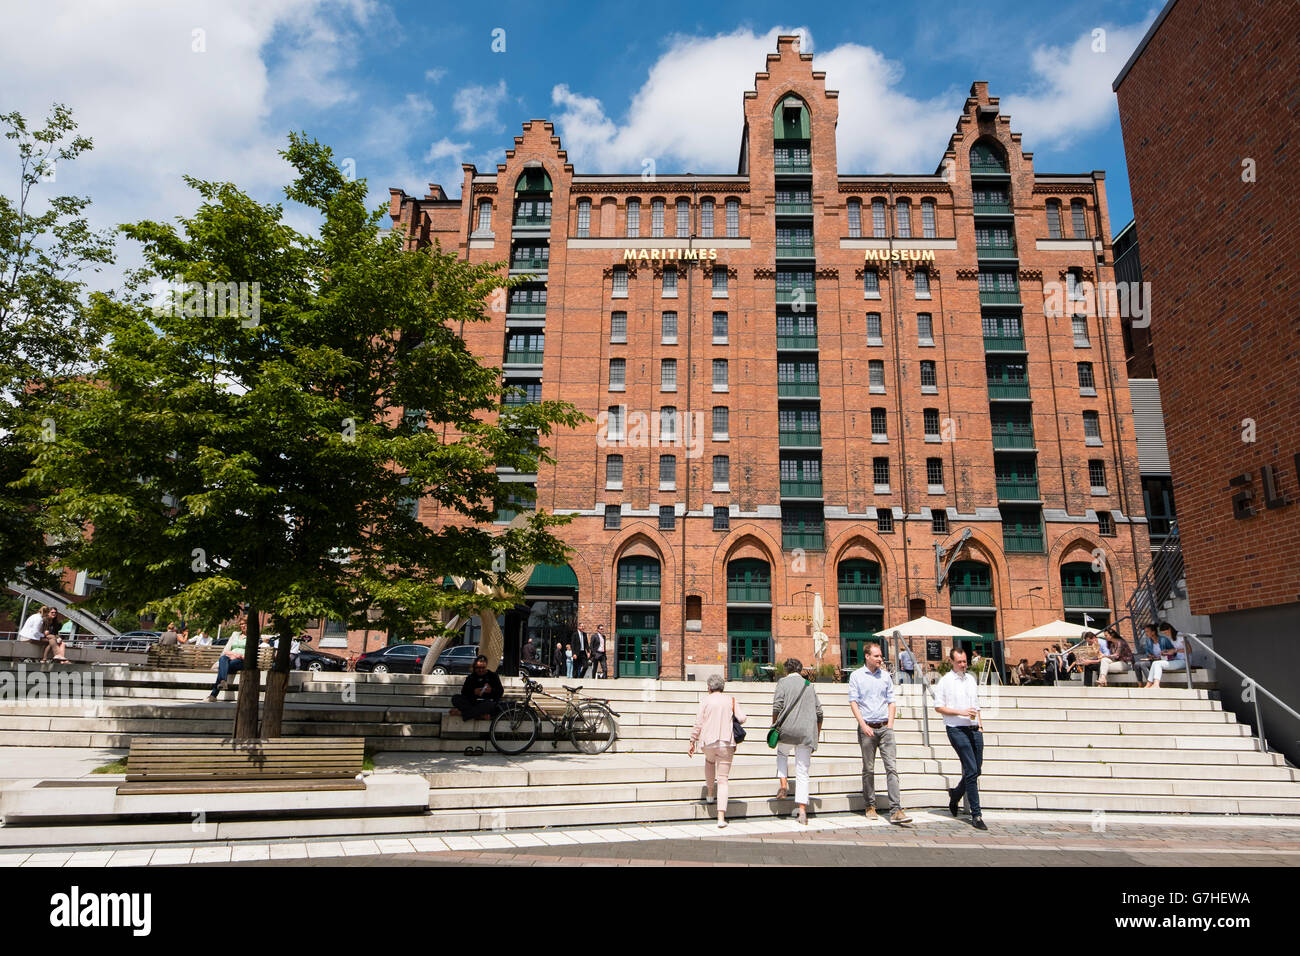 View of  International Maritime Museum in Hamburg Germany - Stock Image